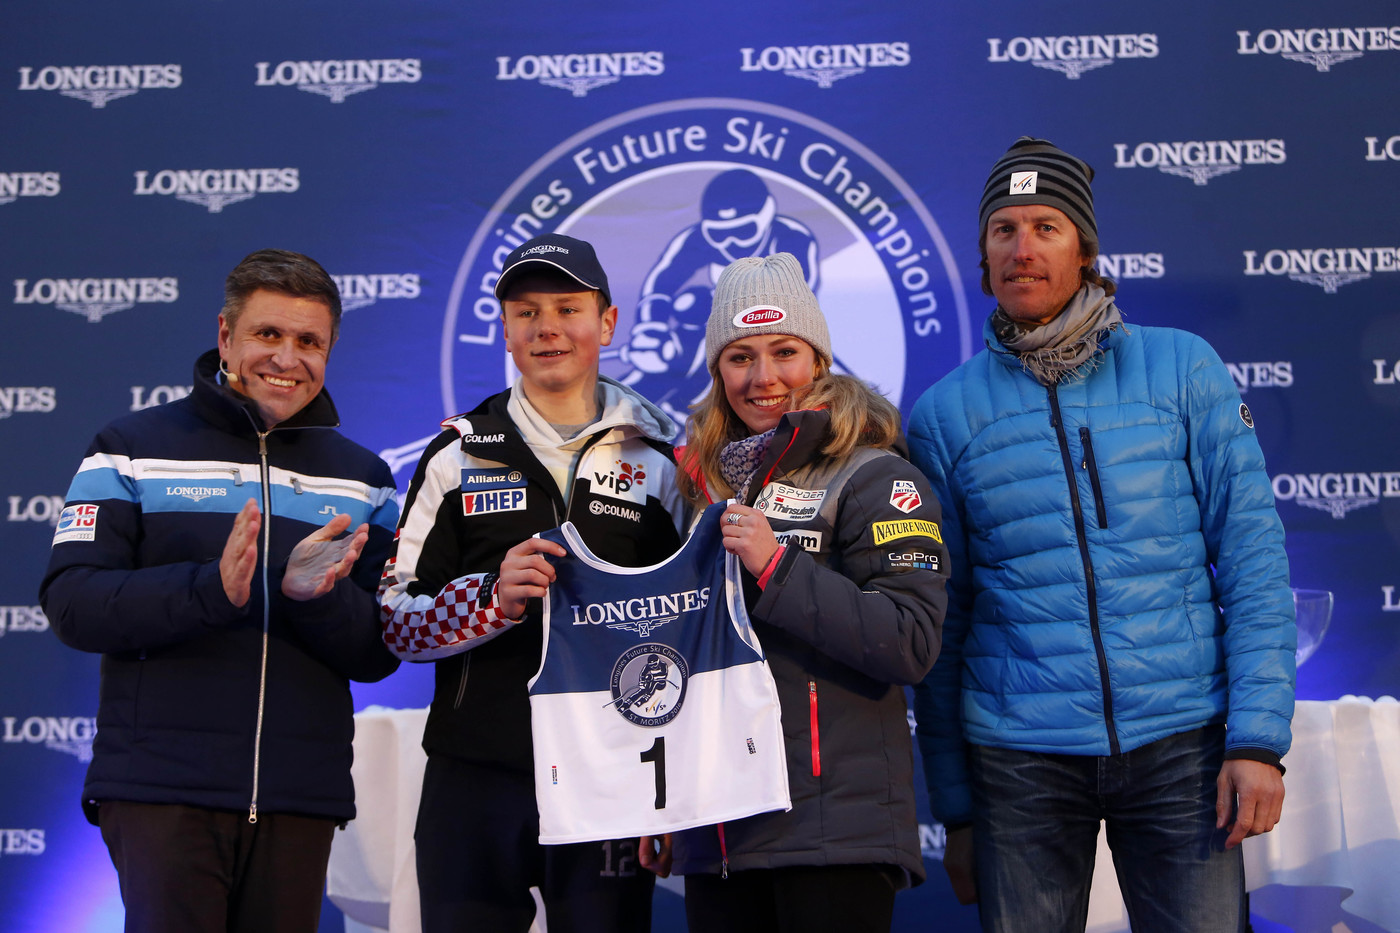 Longines Alpine Skiing Event: A new venue for the third edition of the Longines Future Ski Champions 7